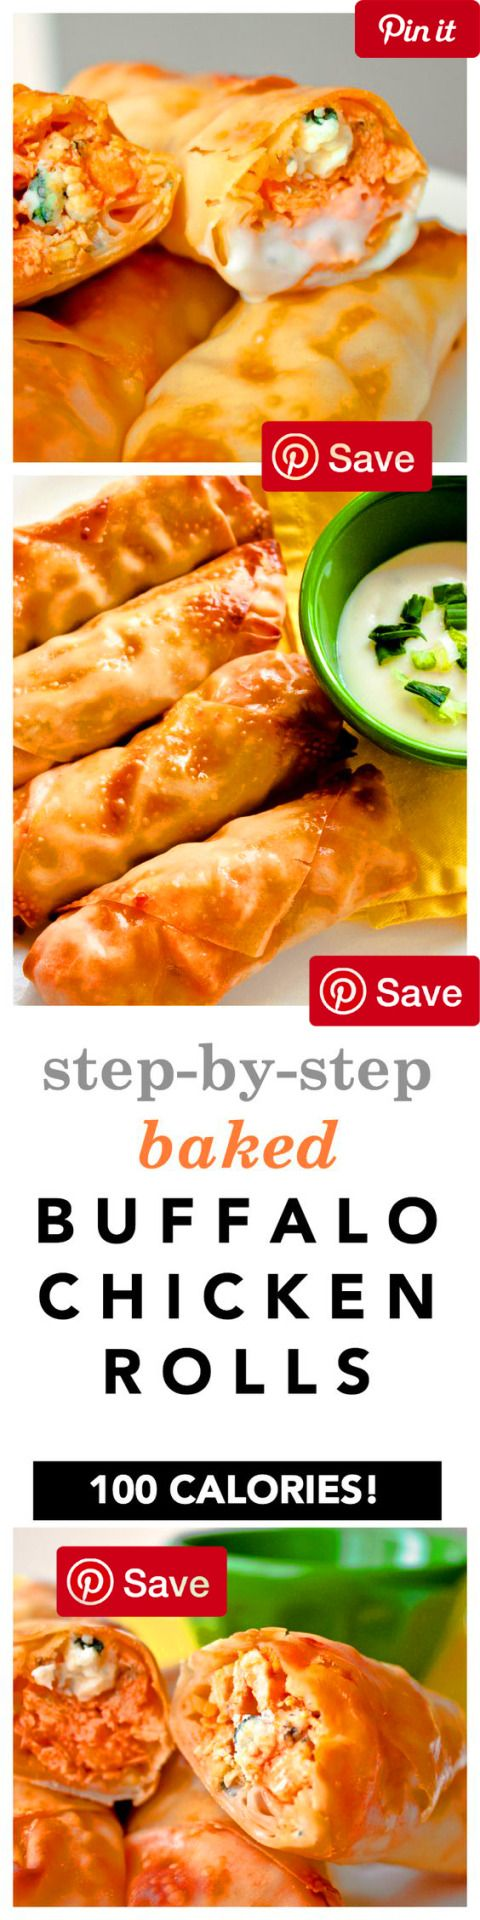 Baked Buffalo Chicken Rolls Makes 12 Rolls Ingredients Meat diys 1 cup Chicken cooked and shredded  cup Franks red hot sauce Condiments 1 Blue cheese dressing Bread & Baked Goods 12 Egg roll wrappers Dairy 1 cup Blue cheese Deli 1 cup Broccoli slaw or coleslaw dry